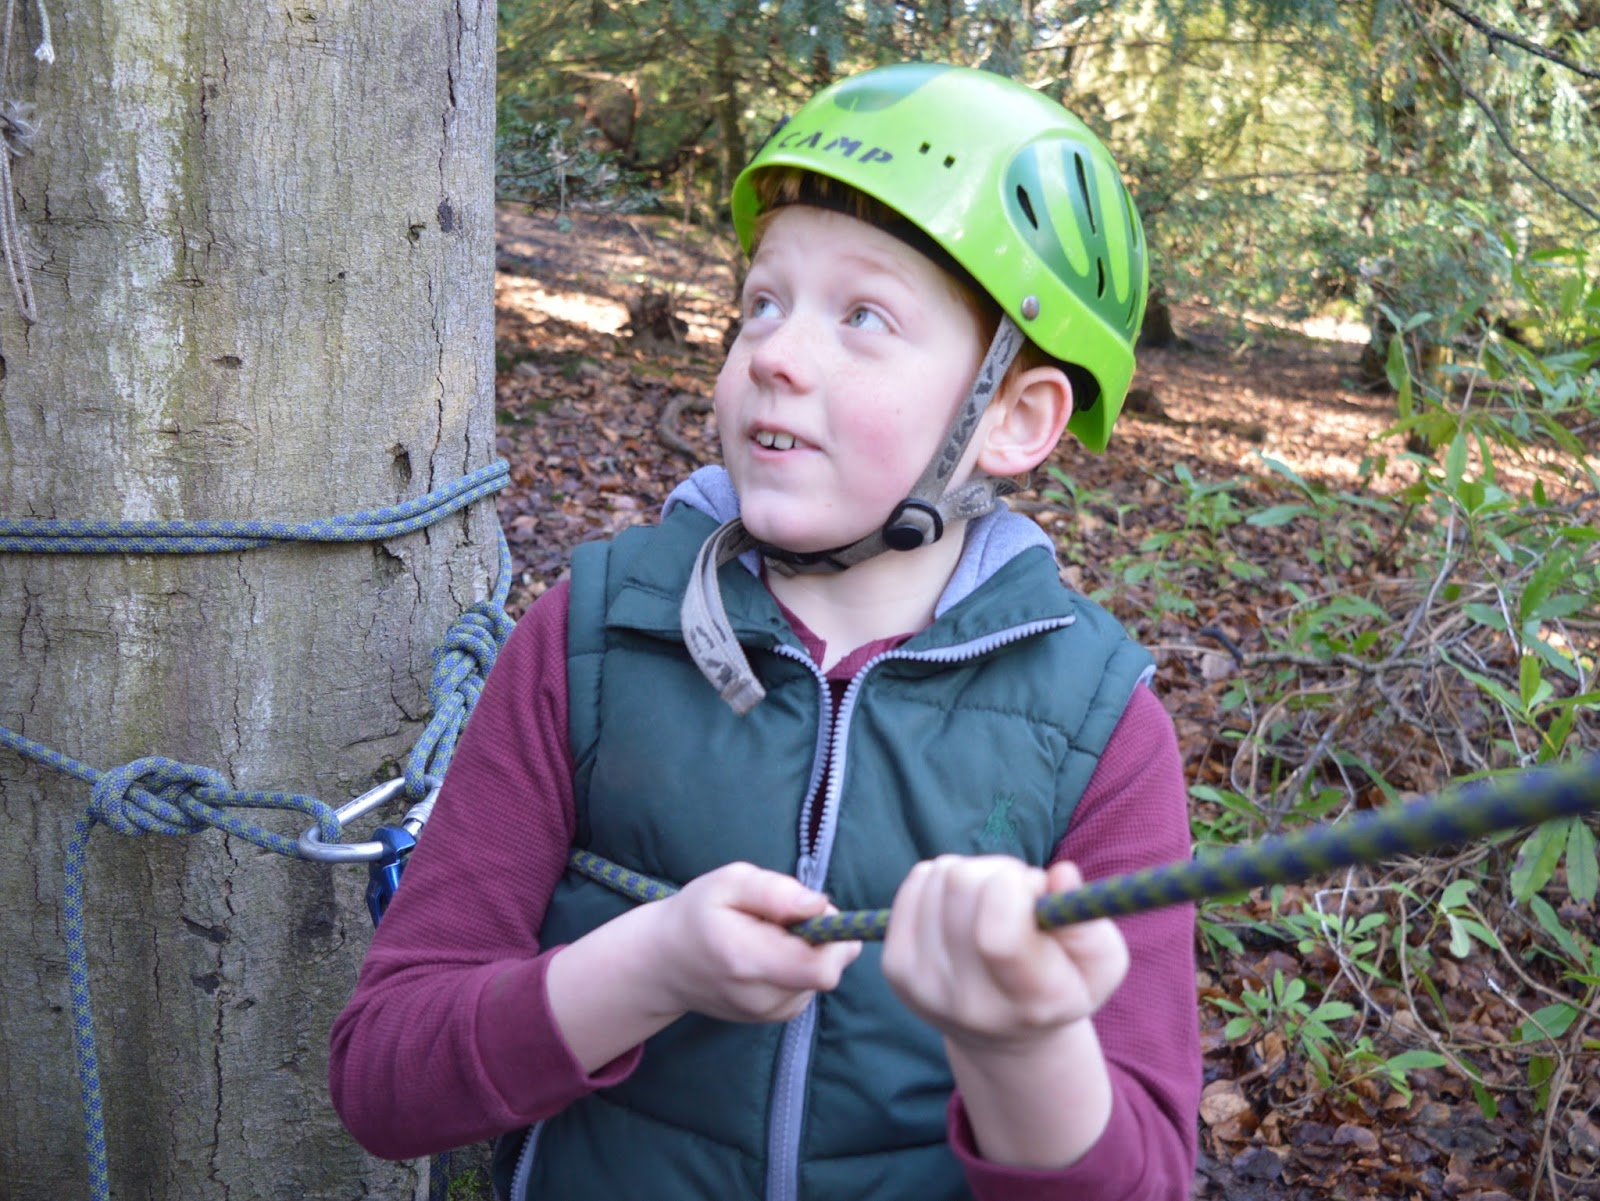 Beamish Wild | School Holiday Club & Activities in County Durham | North East England